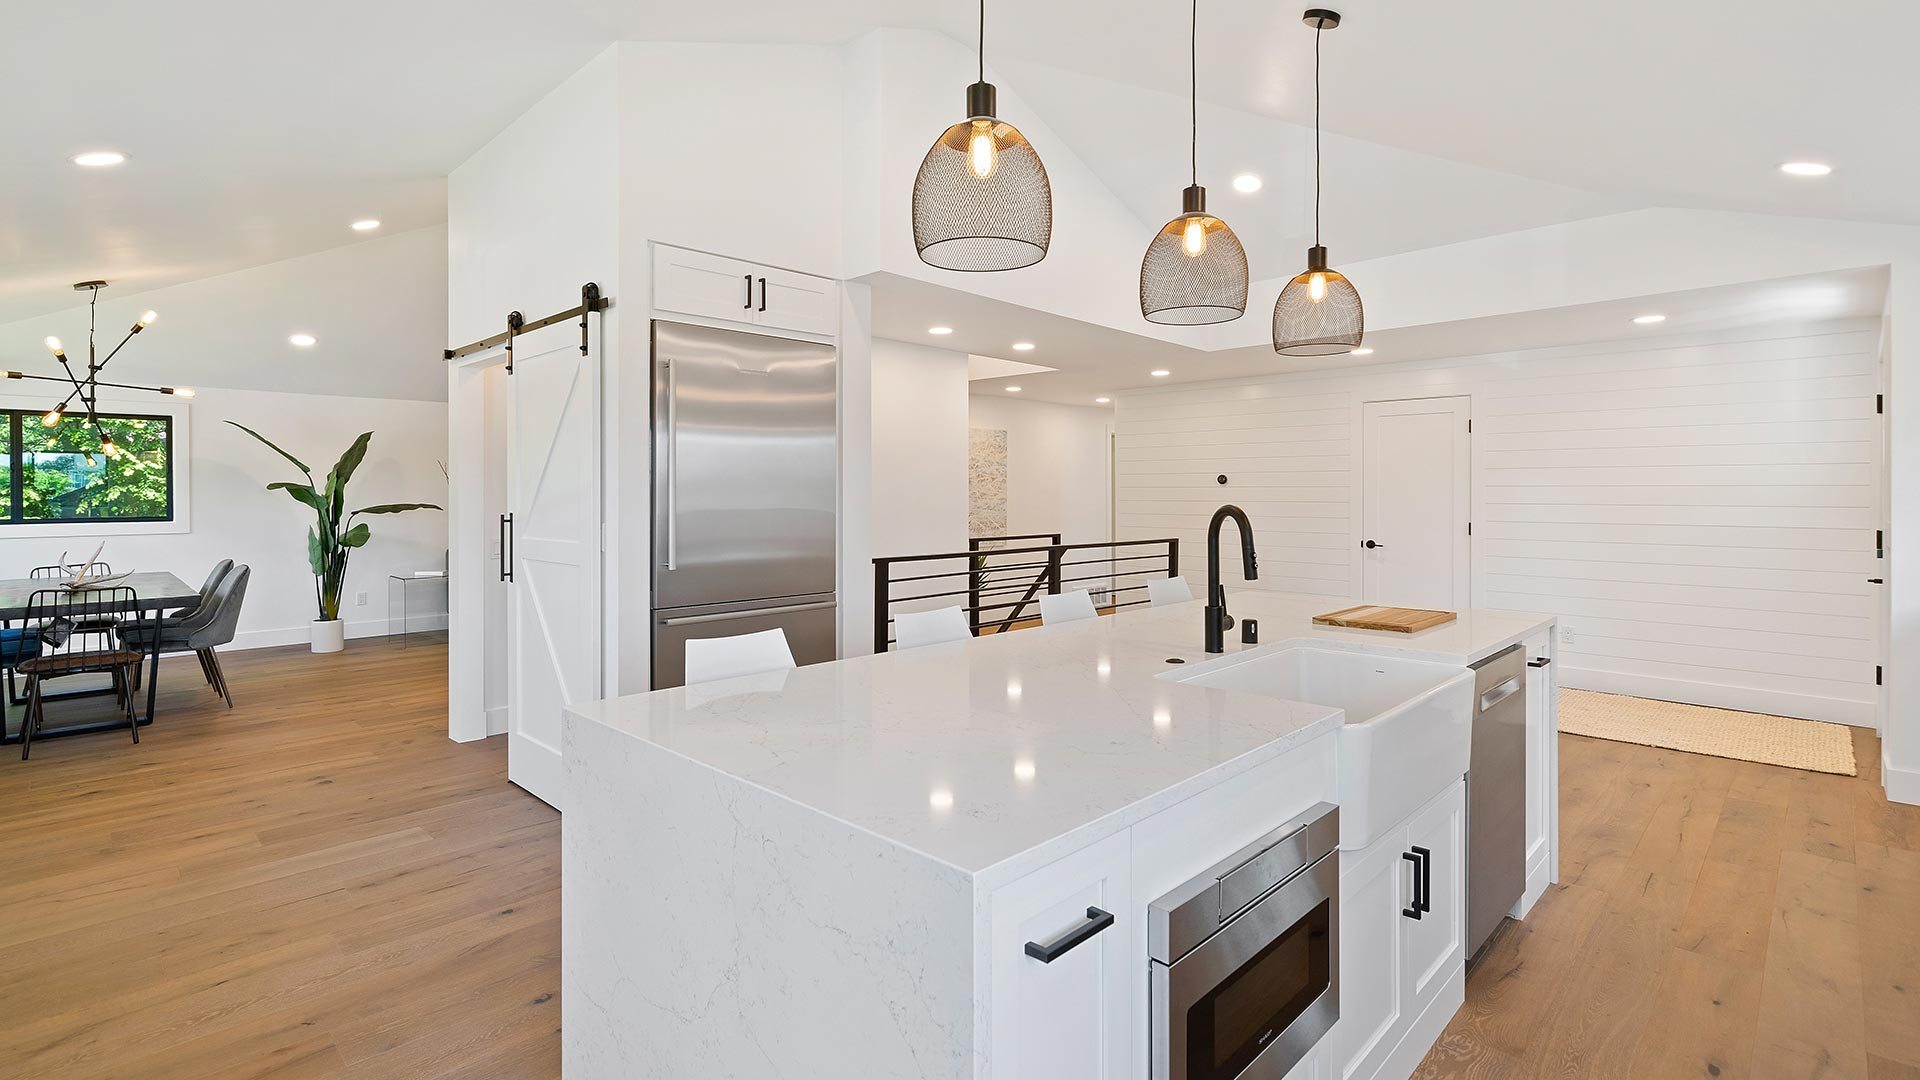 Kitchen view with closet